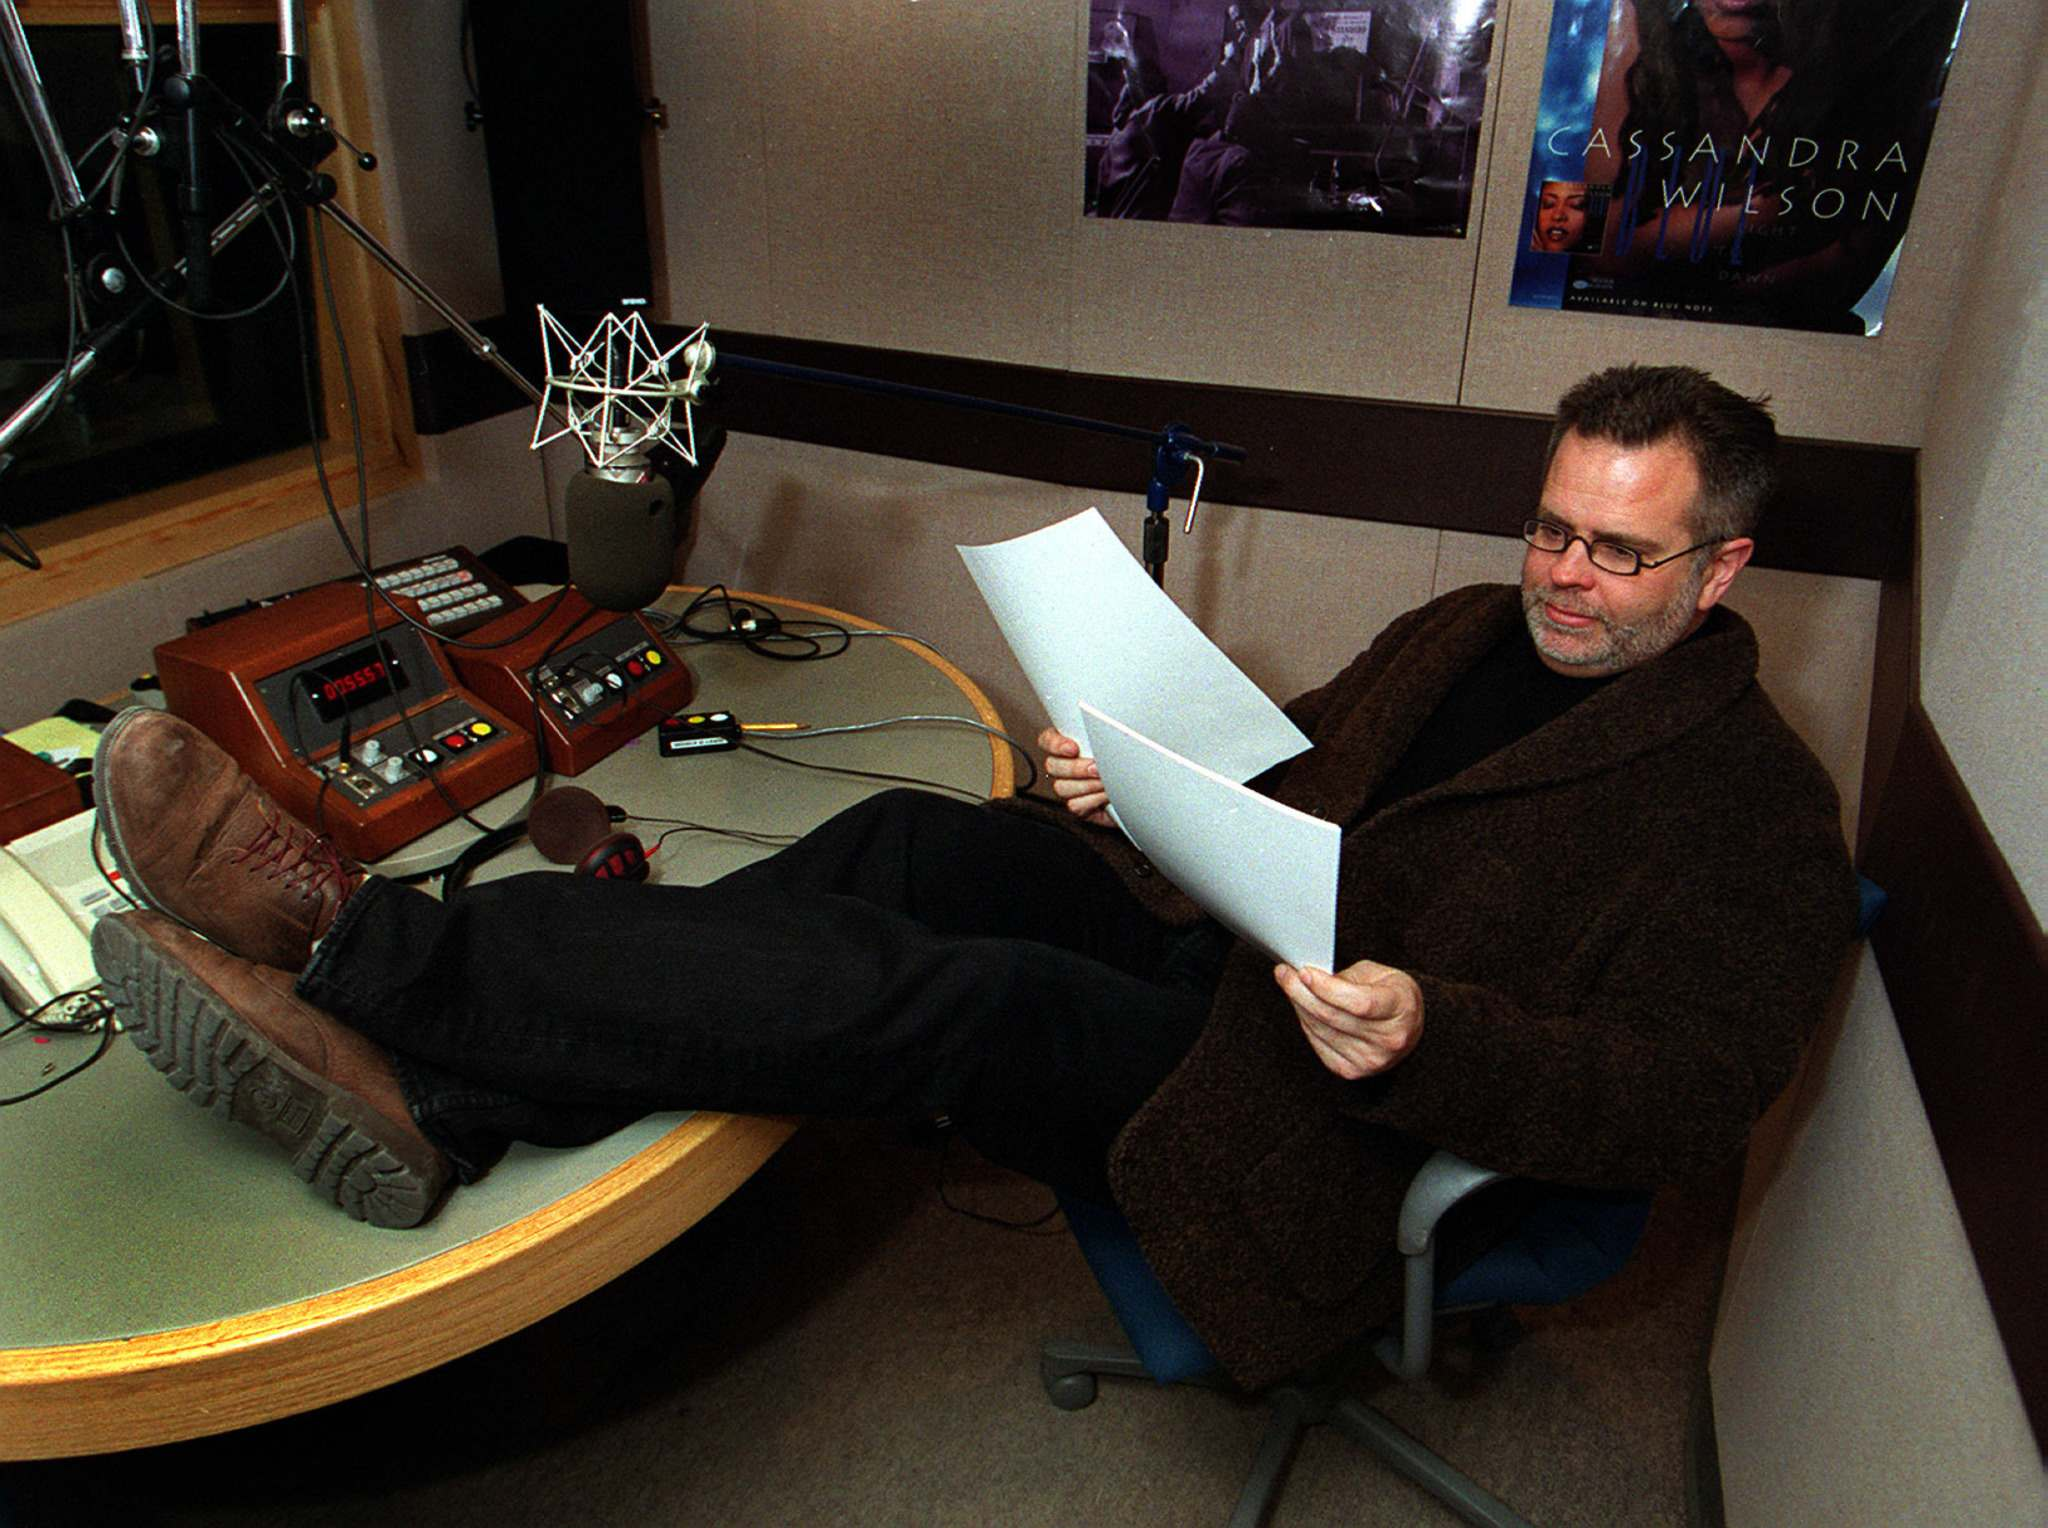 Ross Porter in Winnipeg in 2000 during his stint as host of the CBC show After Hours. (Wayne Glowacki / Winnipeg Free Press Files)</p>